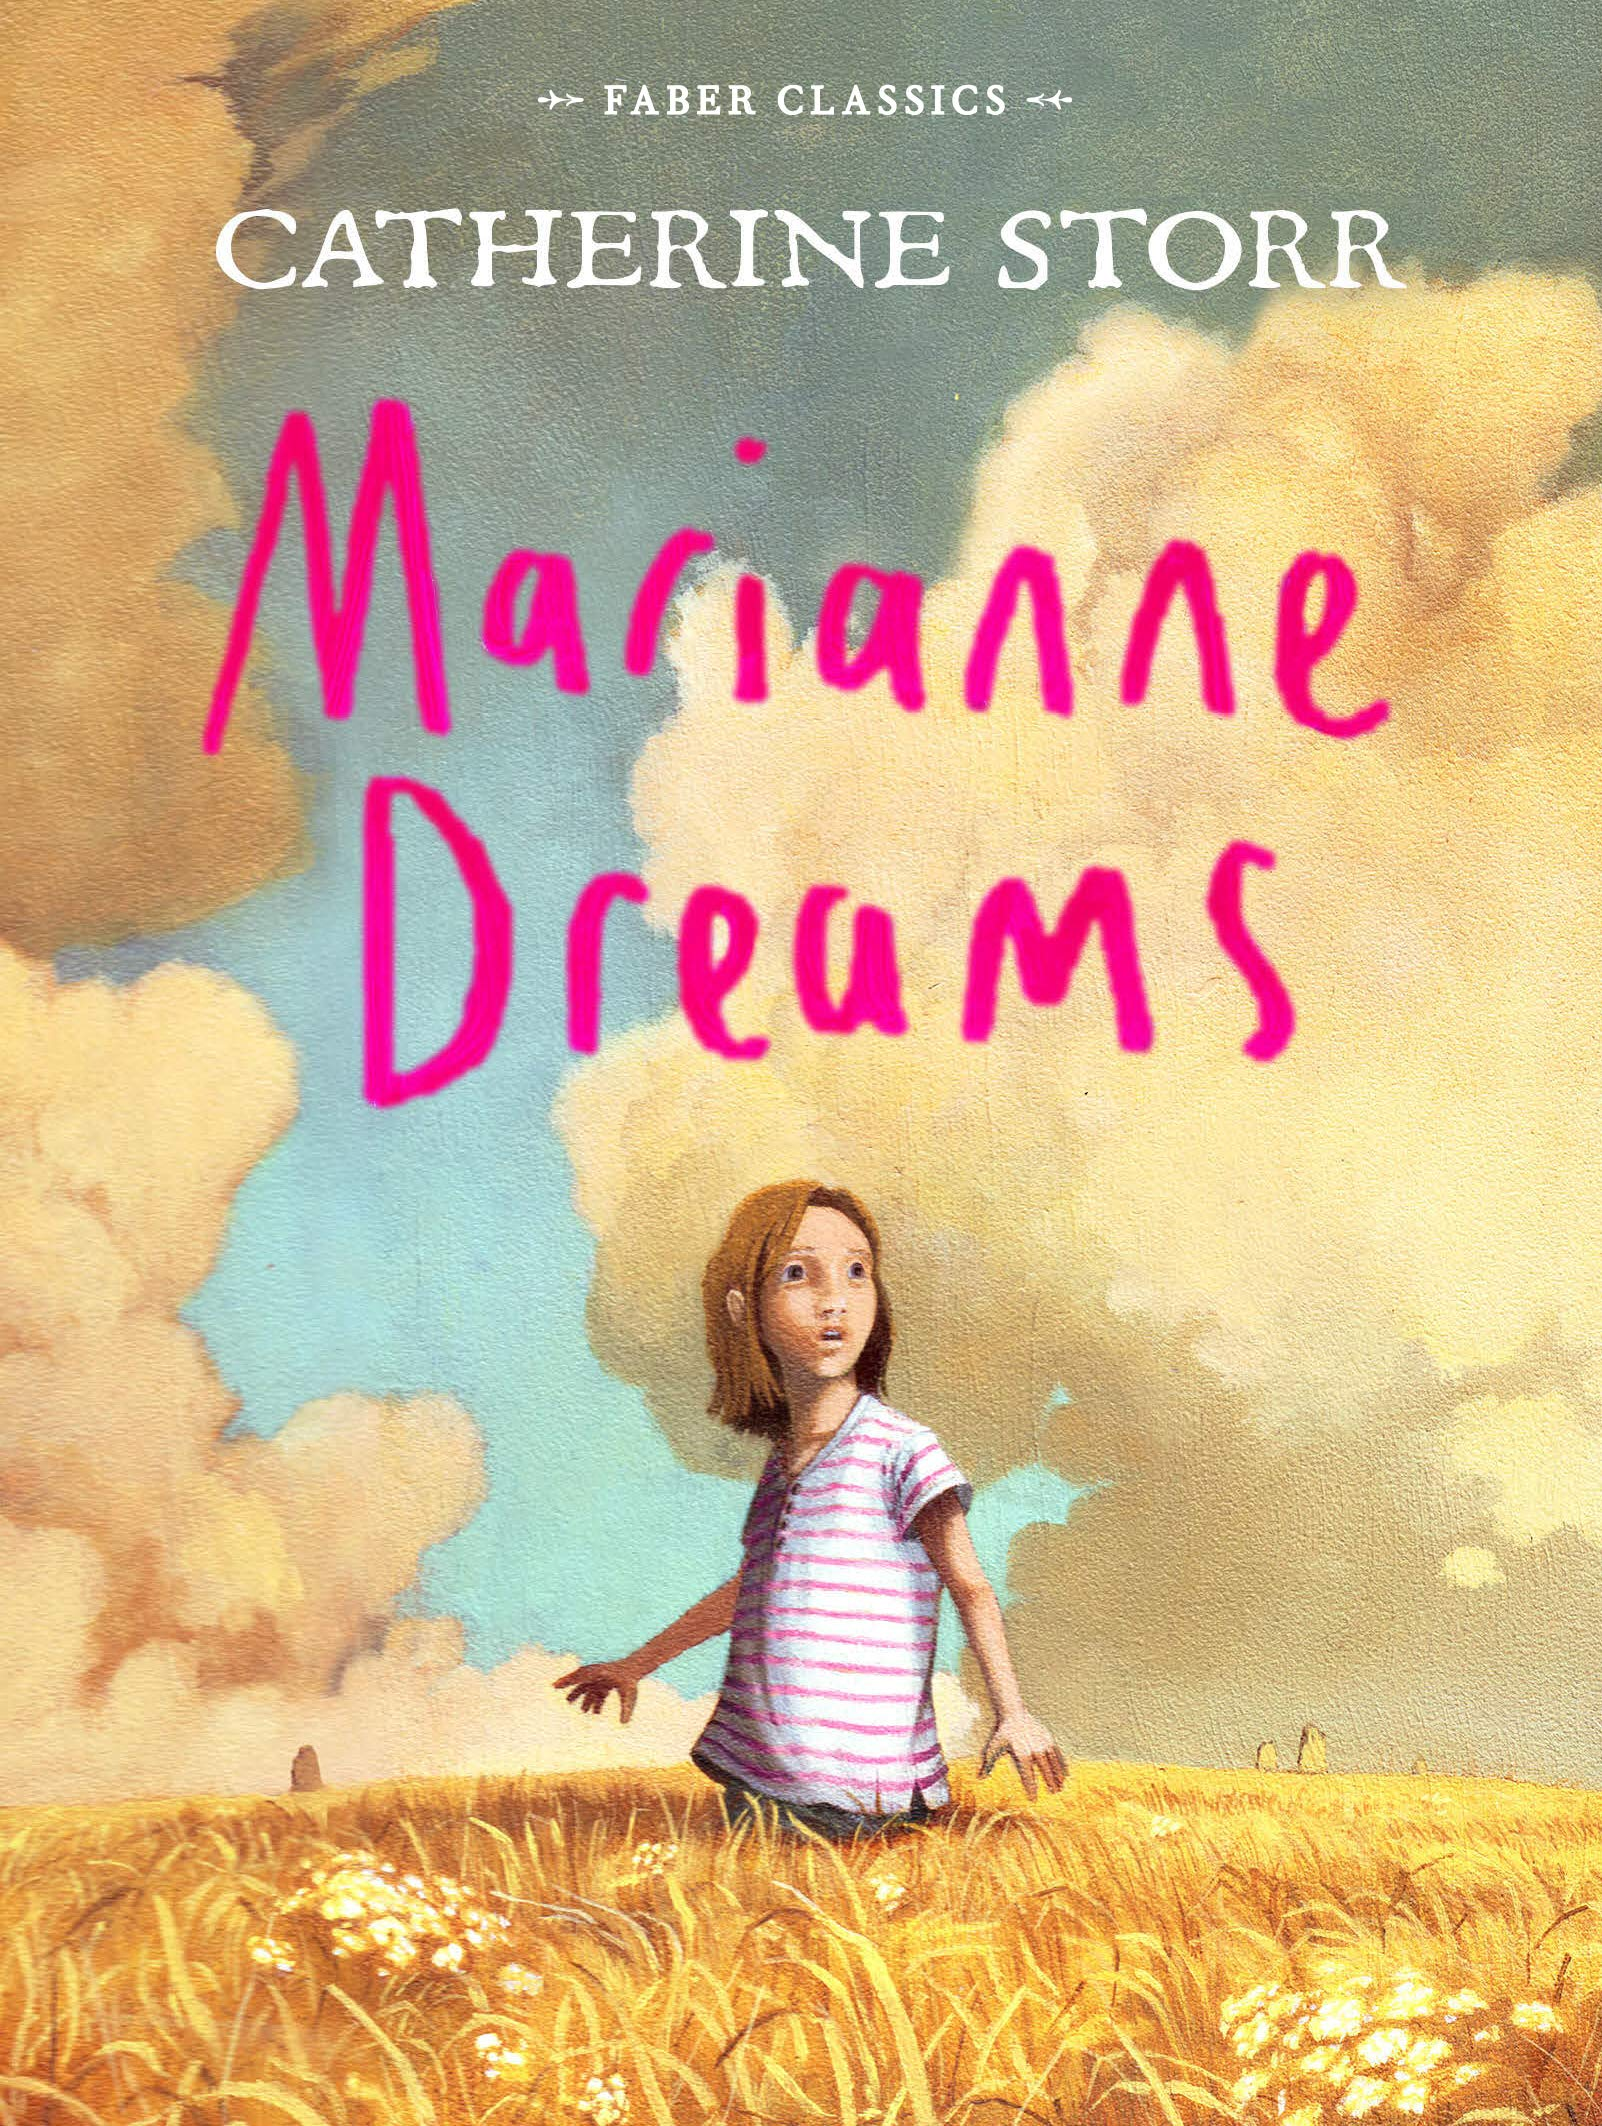 Image result for Marianne Dreams by Catherine Storr